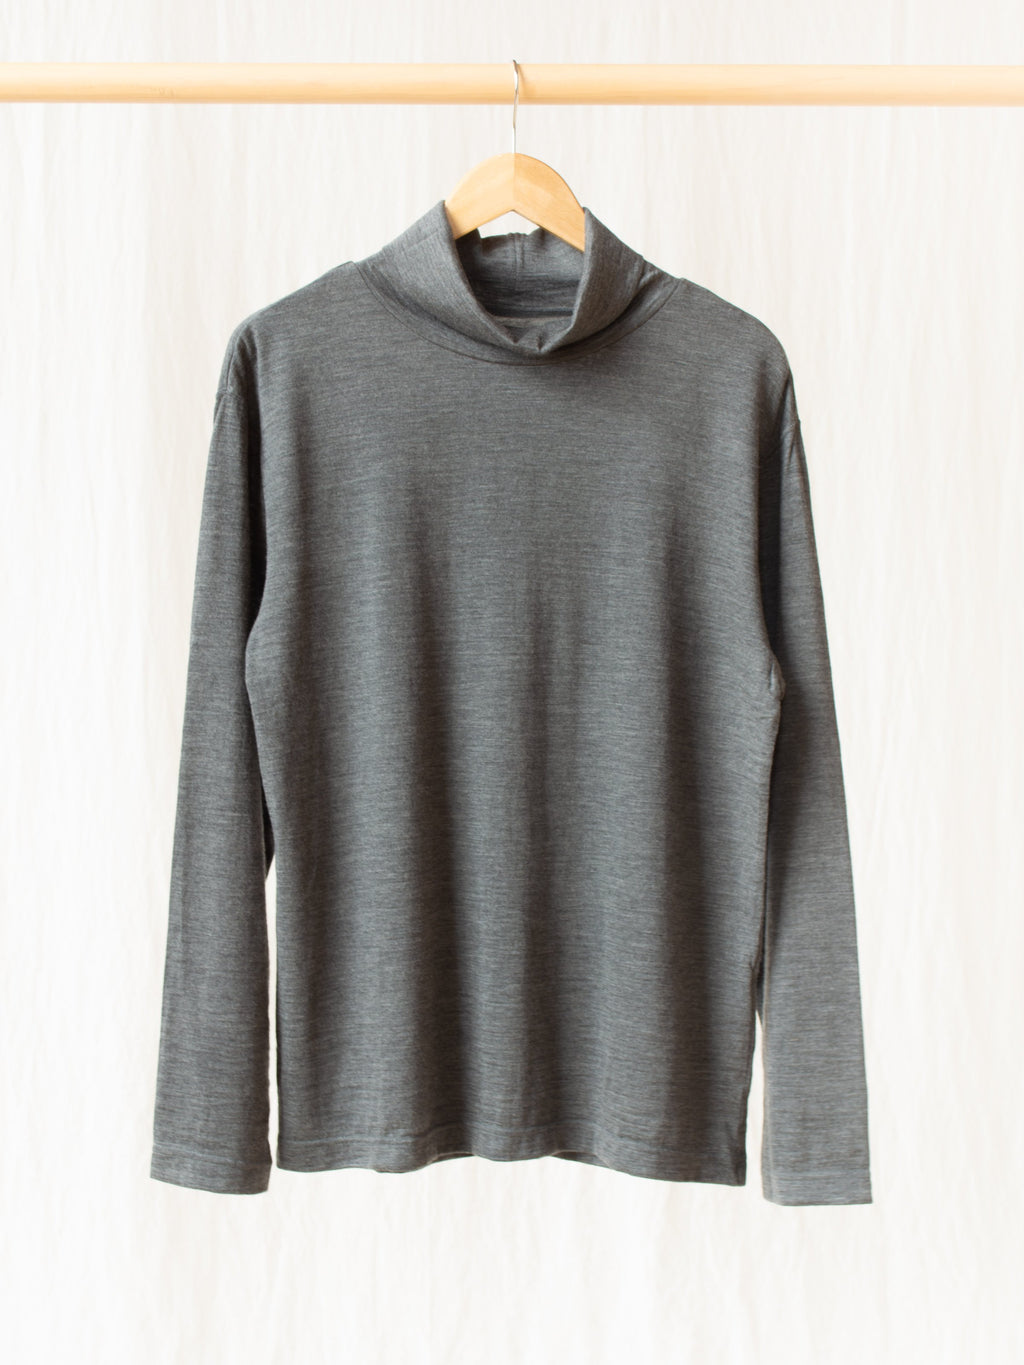 Washable High Gauge Wool Turtleneck - Gray